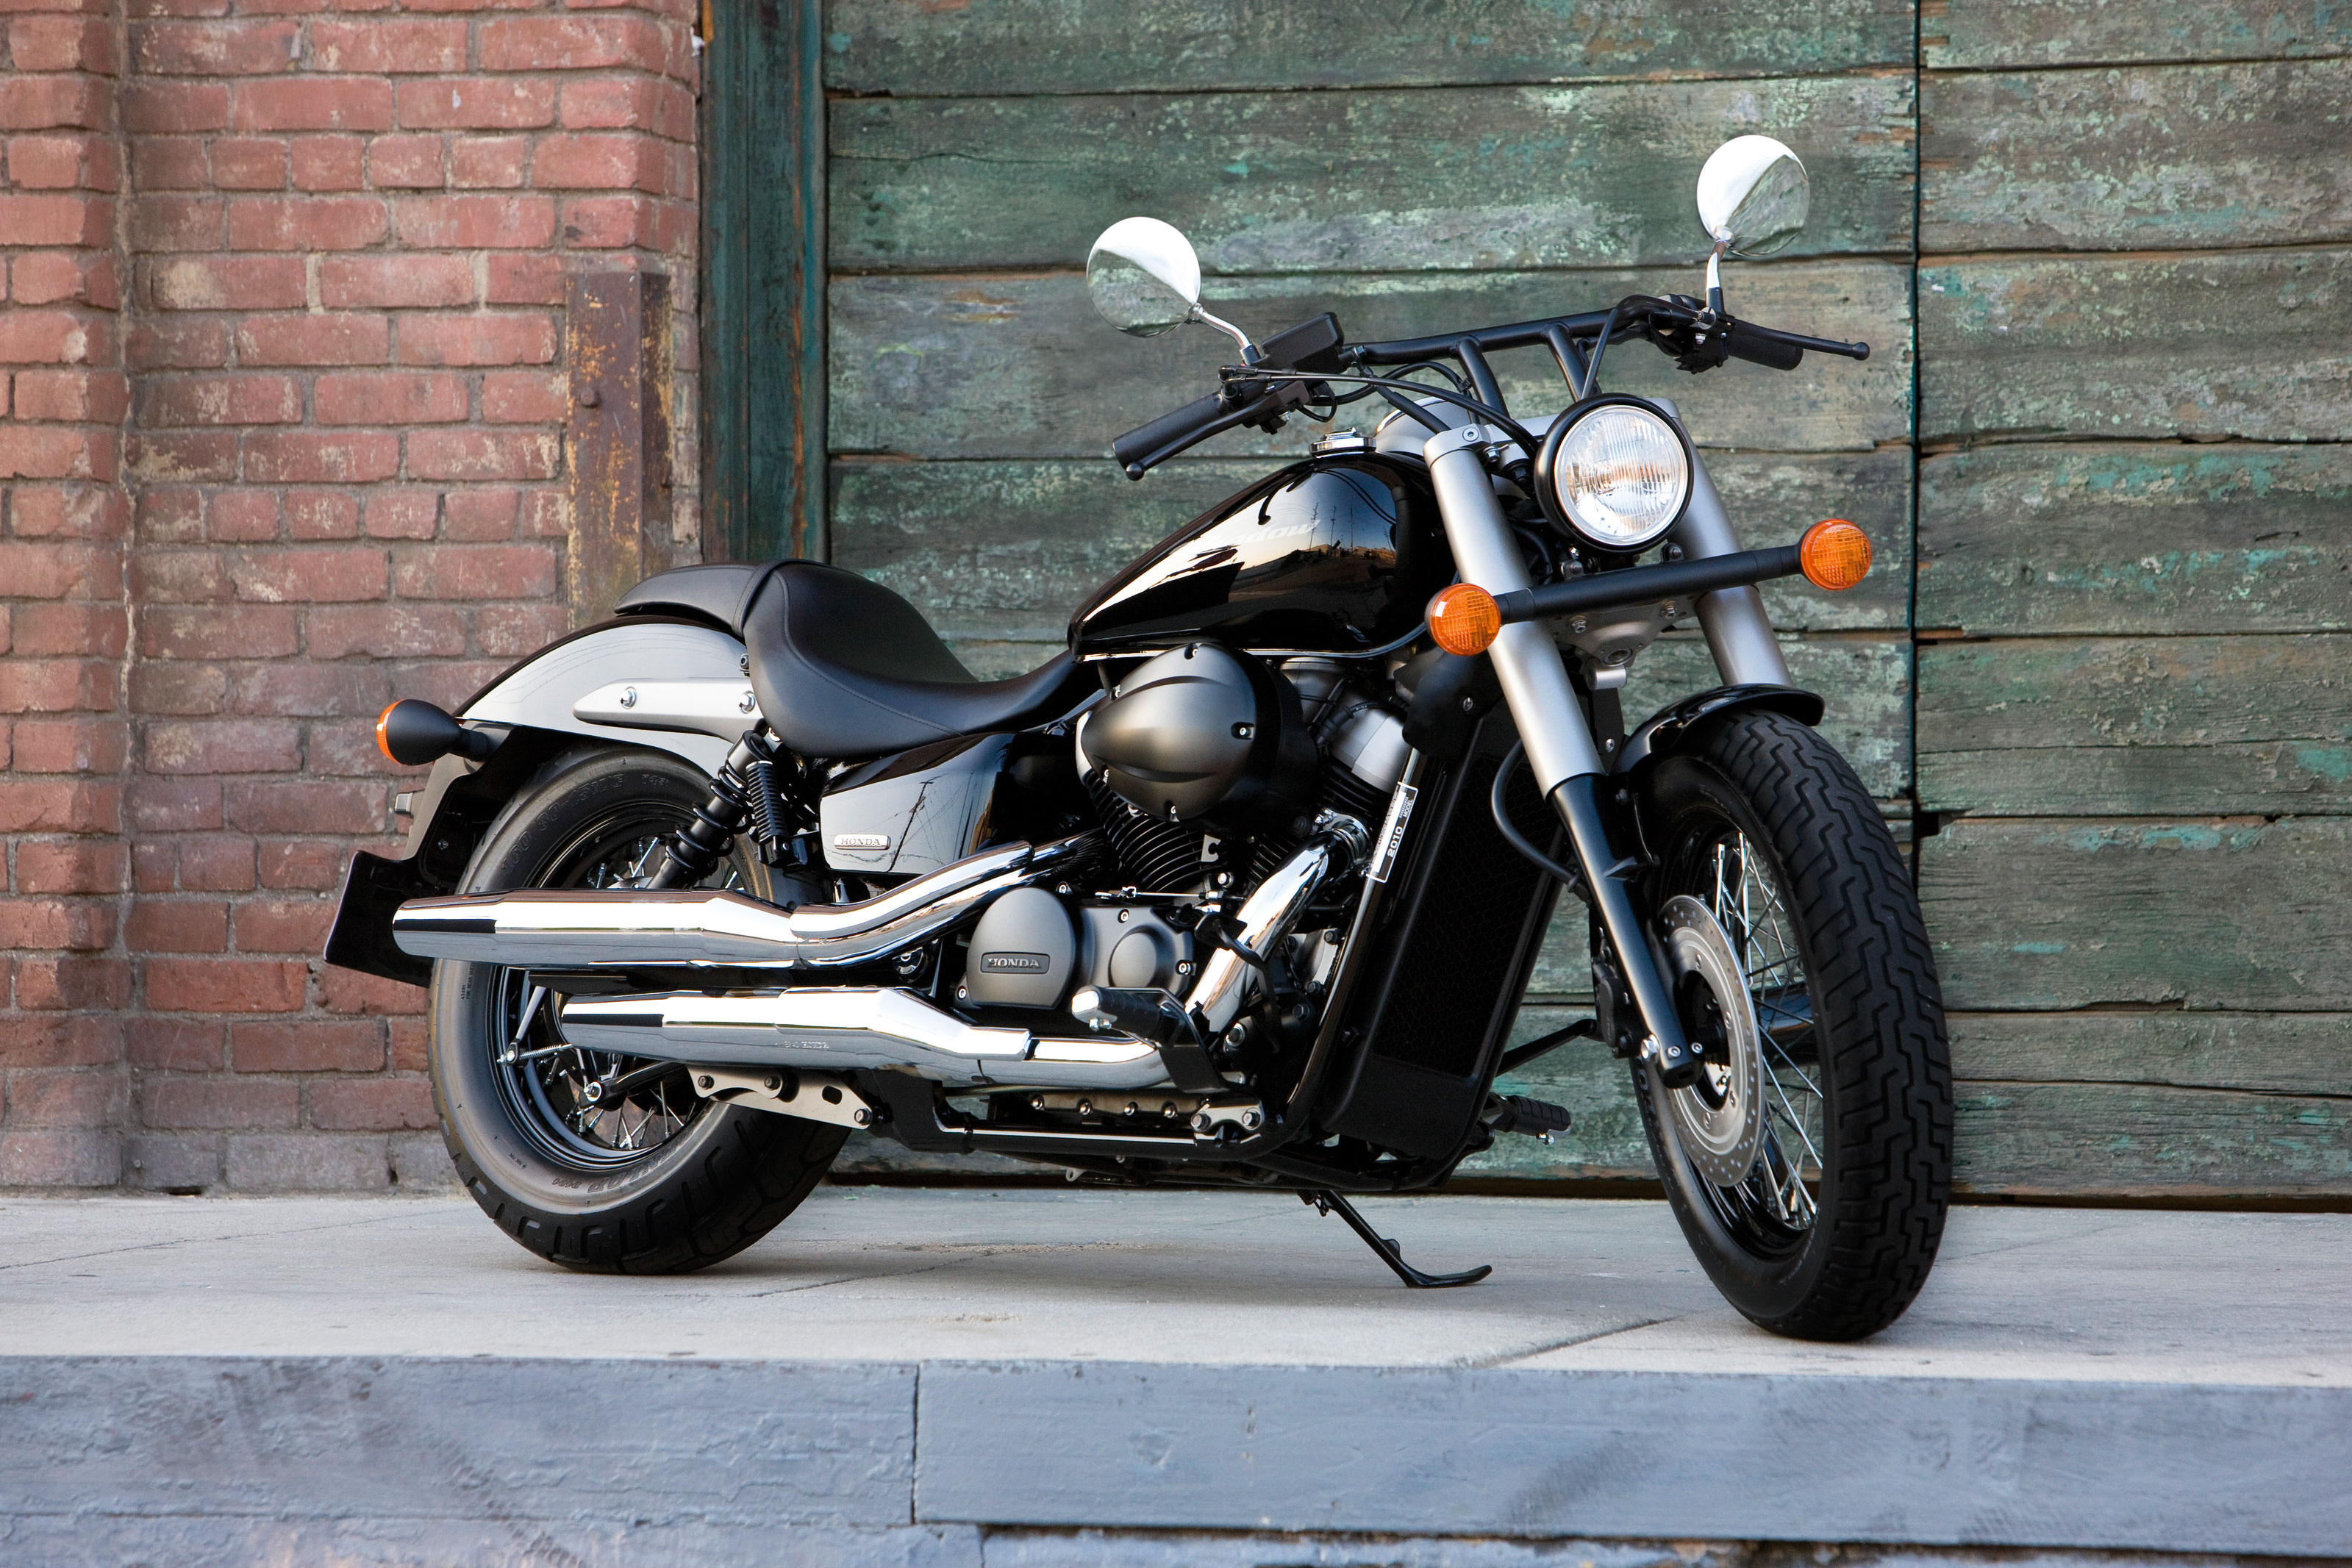 061311-2011-honda-shadow-aero